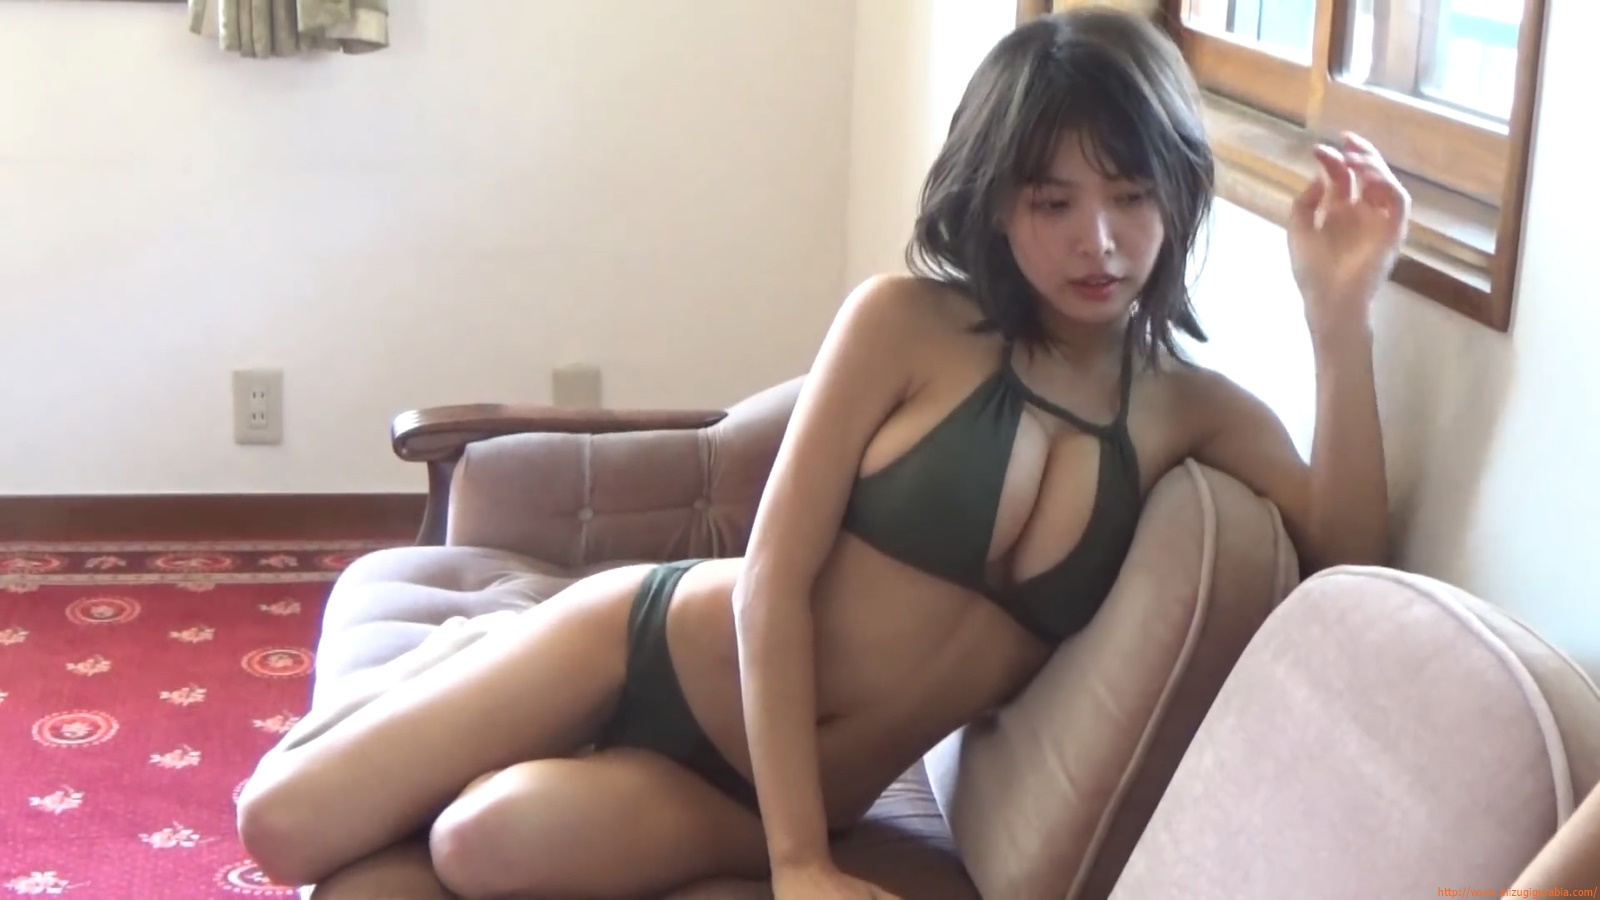 The gravure that makes all Japan cheer up Rio Teramoto 079